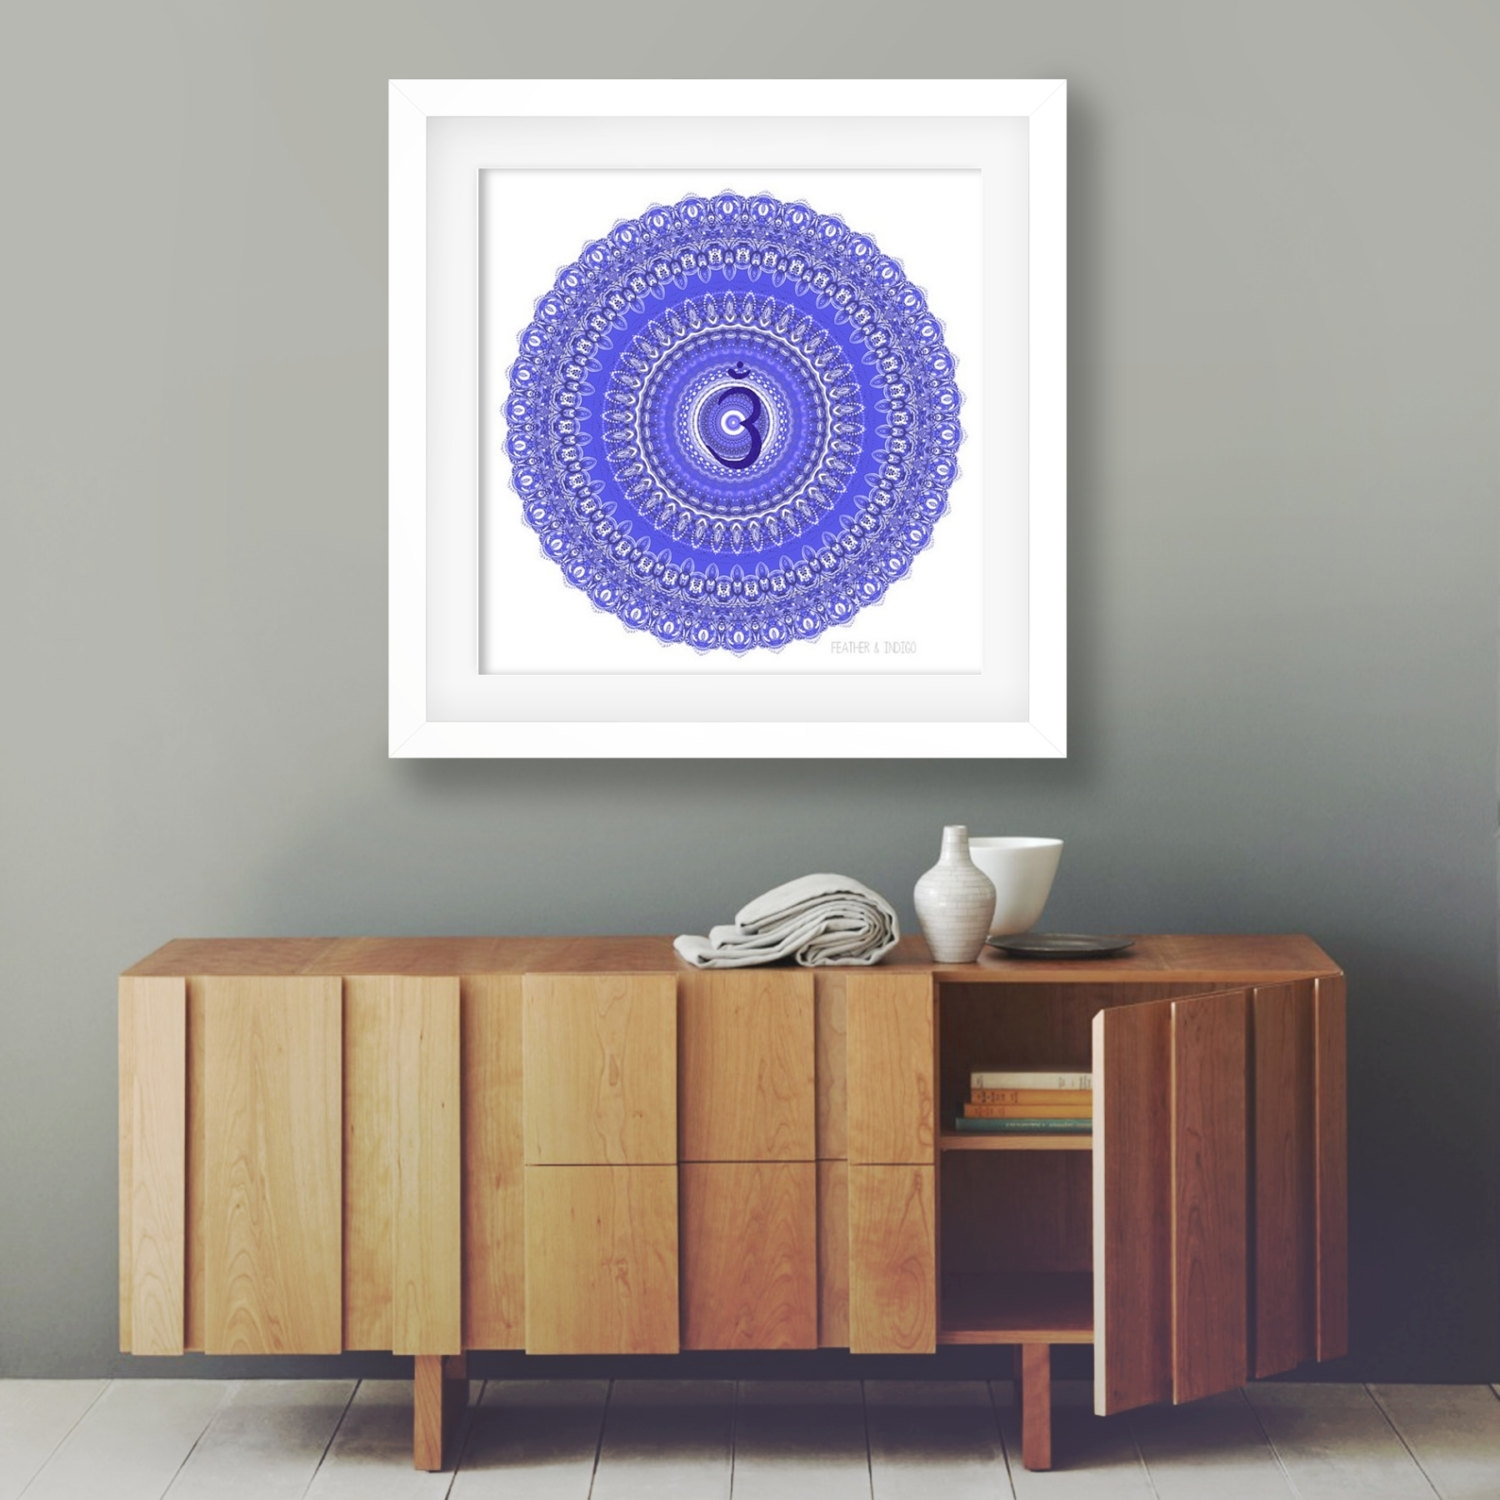 Popular Items For Mandala Wall Decor On Etsy Third Eye Chakra Art Pertaining To Most Current Etsy Wall Accents (View 10 of 15)